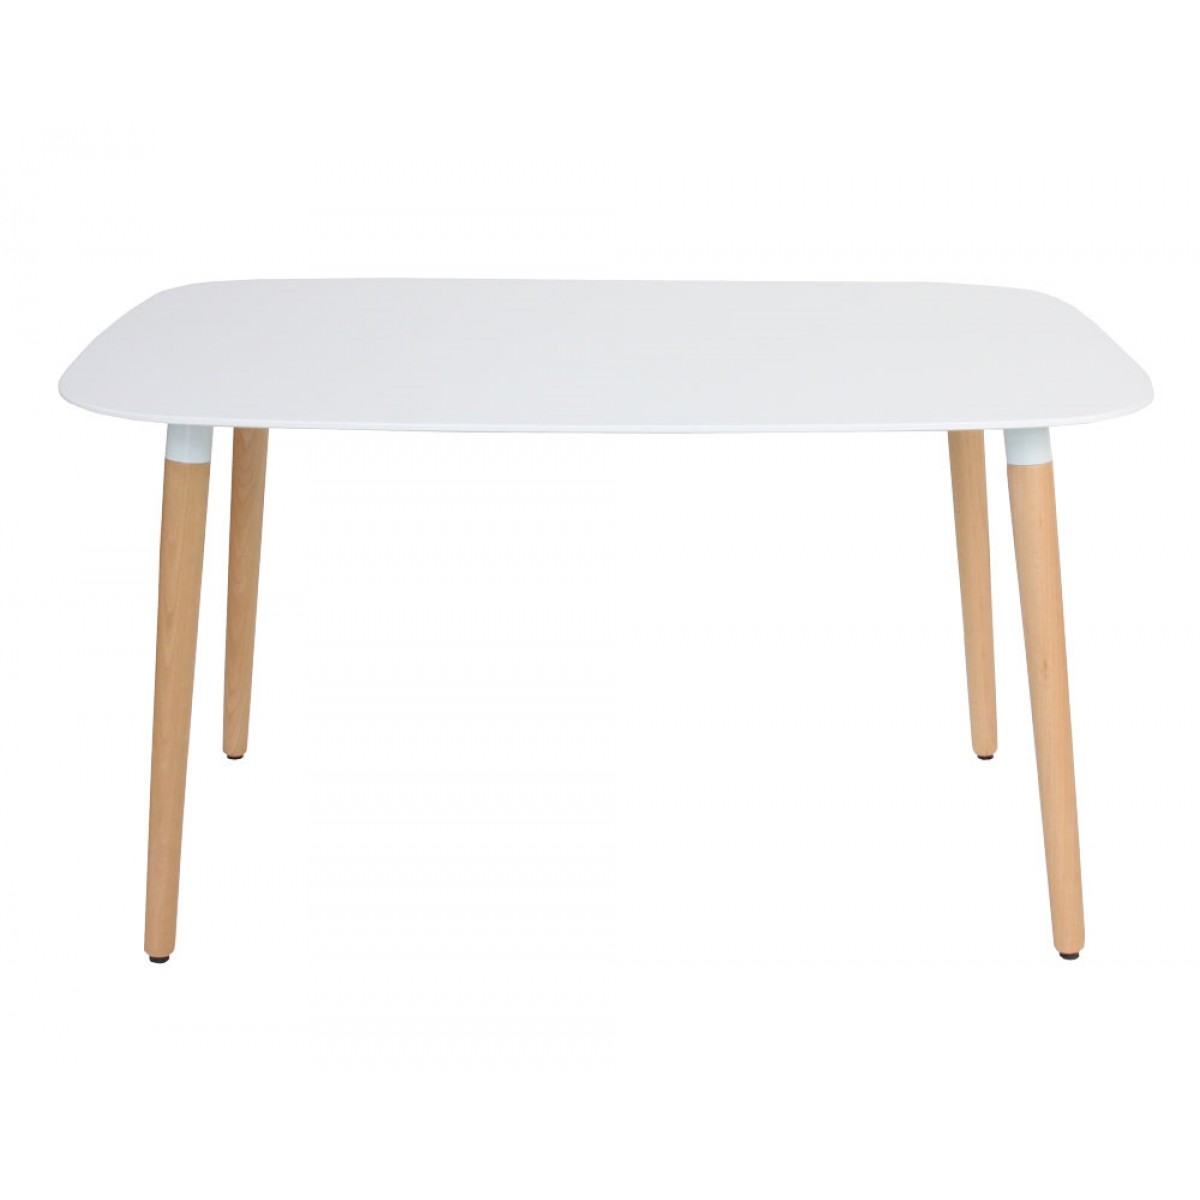 Attractive DSW White Rectangular Dining Table